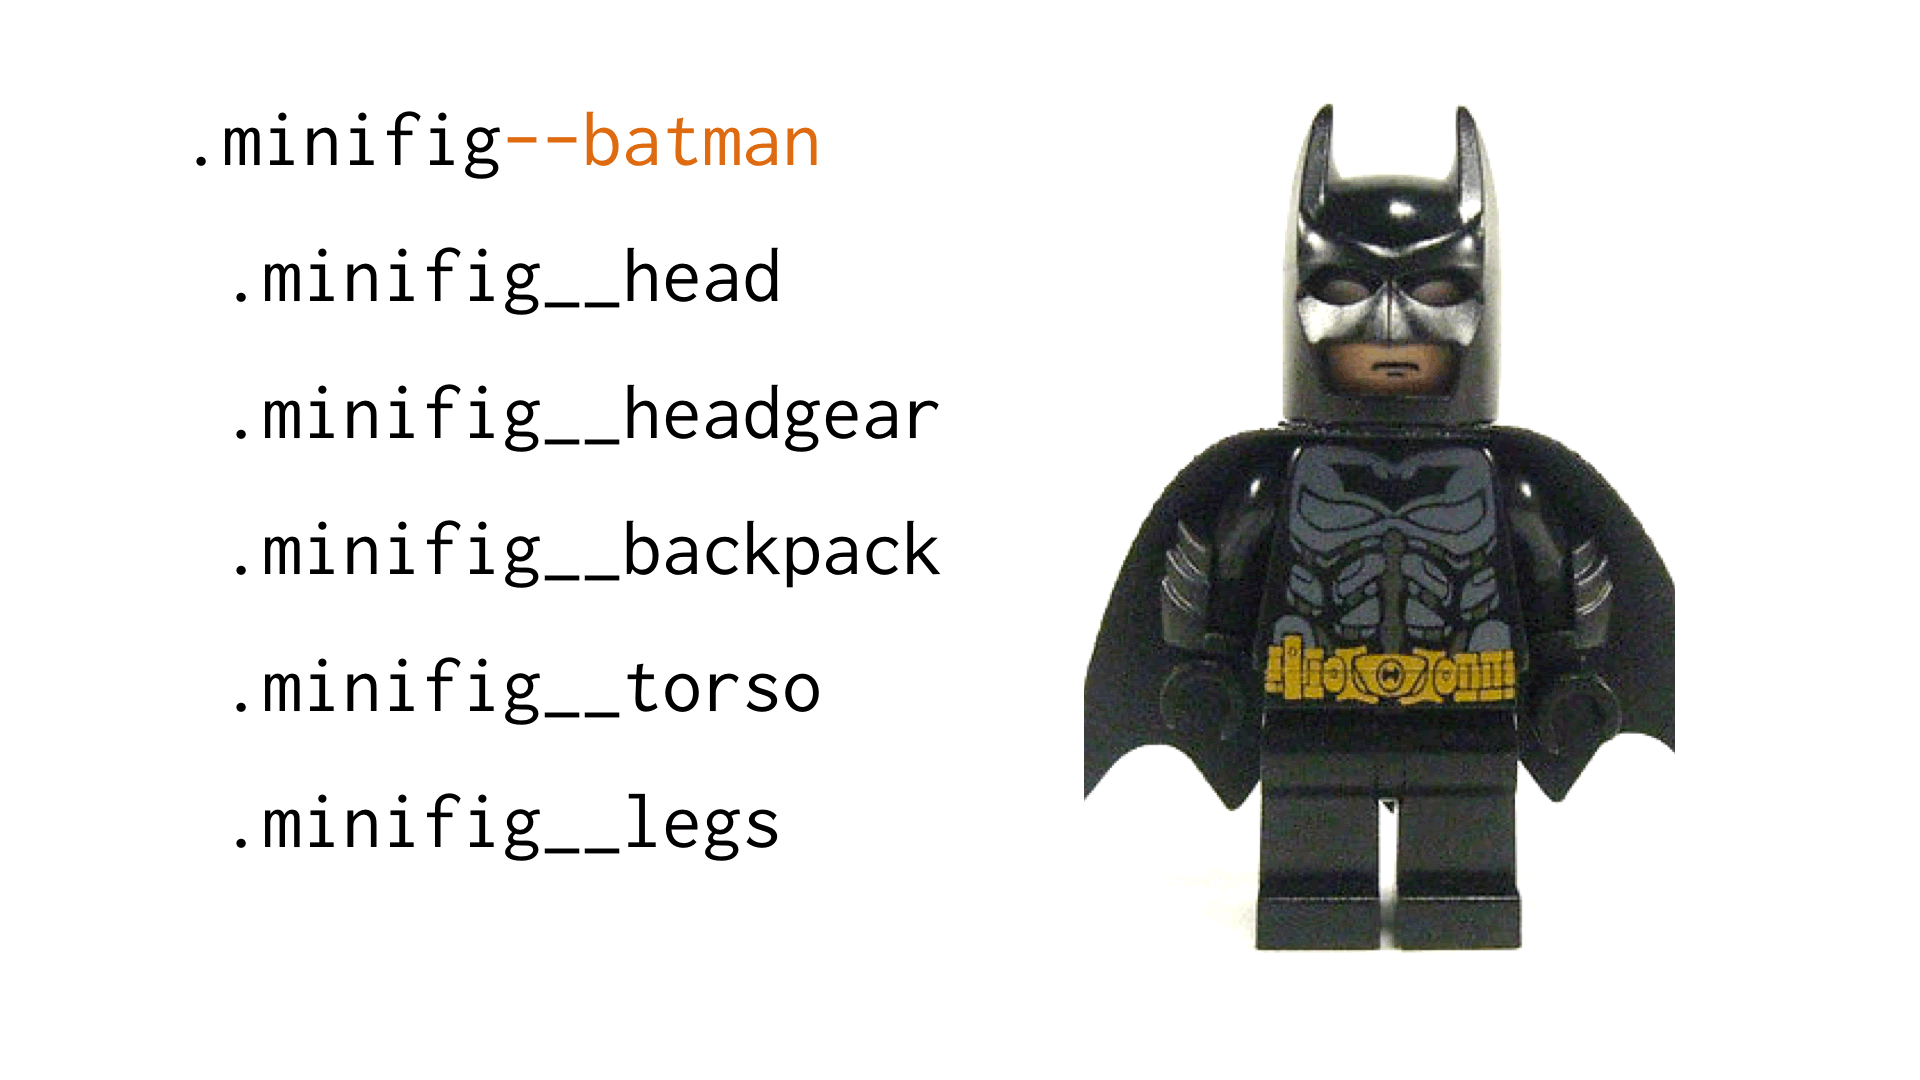 Example of a .minifig--batman module modifier making a drastic change in the appearance of the minifig